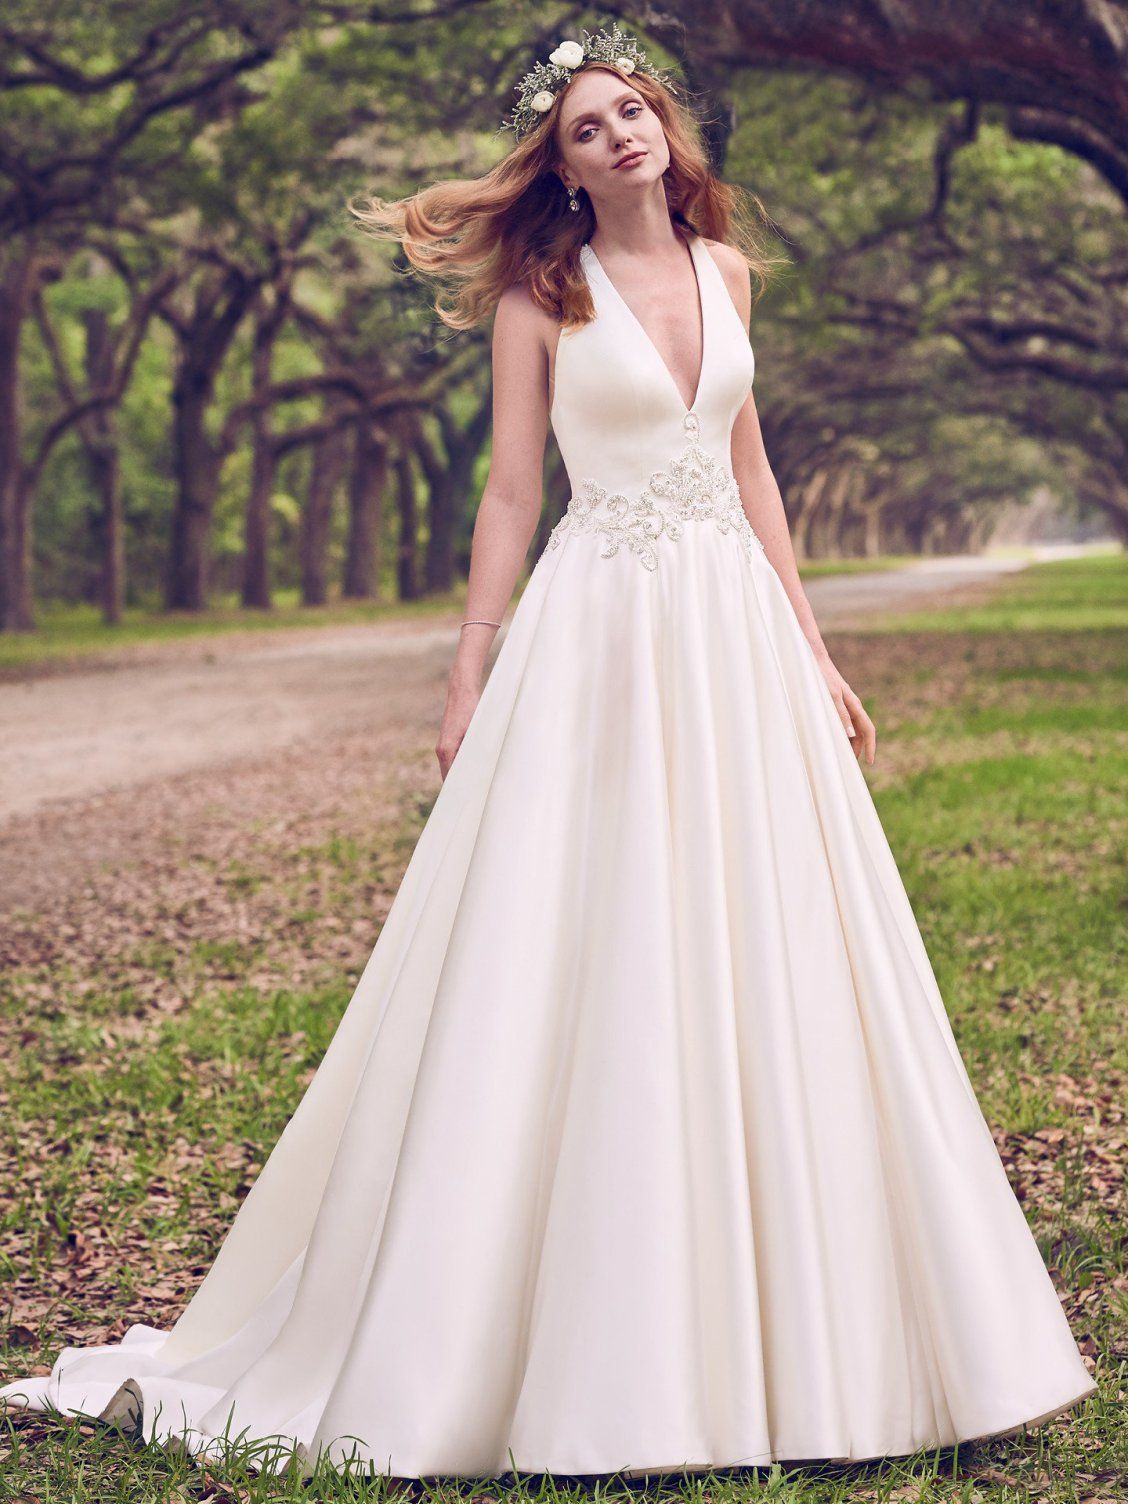 2f6a80546b6 Lovely satin on Corianne by Maggie Sottero! We love this vintage-inspired  look with modern details.